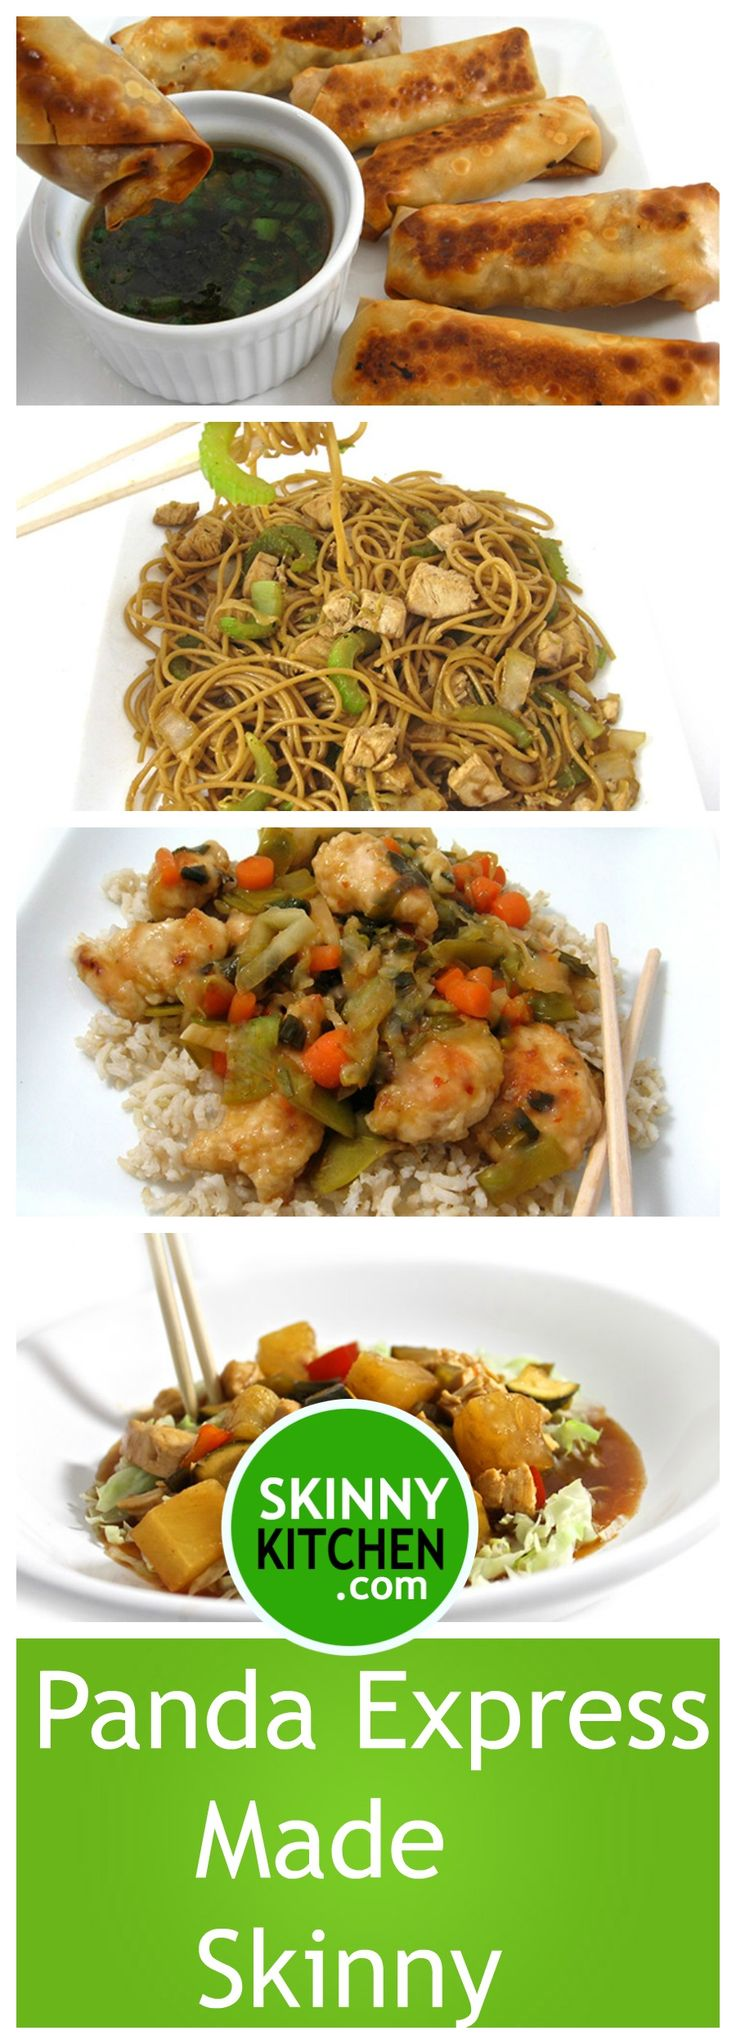 4 Panda Express Dishes Made Skinny. I love Panda Express! I'm sharing 4 of my copy-cat recipes. All are really yummy. Have fun! http://www.skinnykitchen.com/recipes/4-panda-express-dishes-made-skinny/